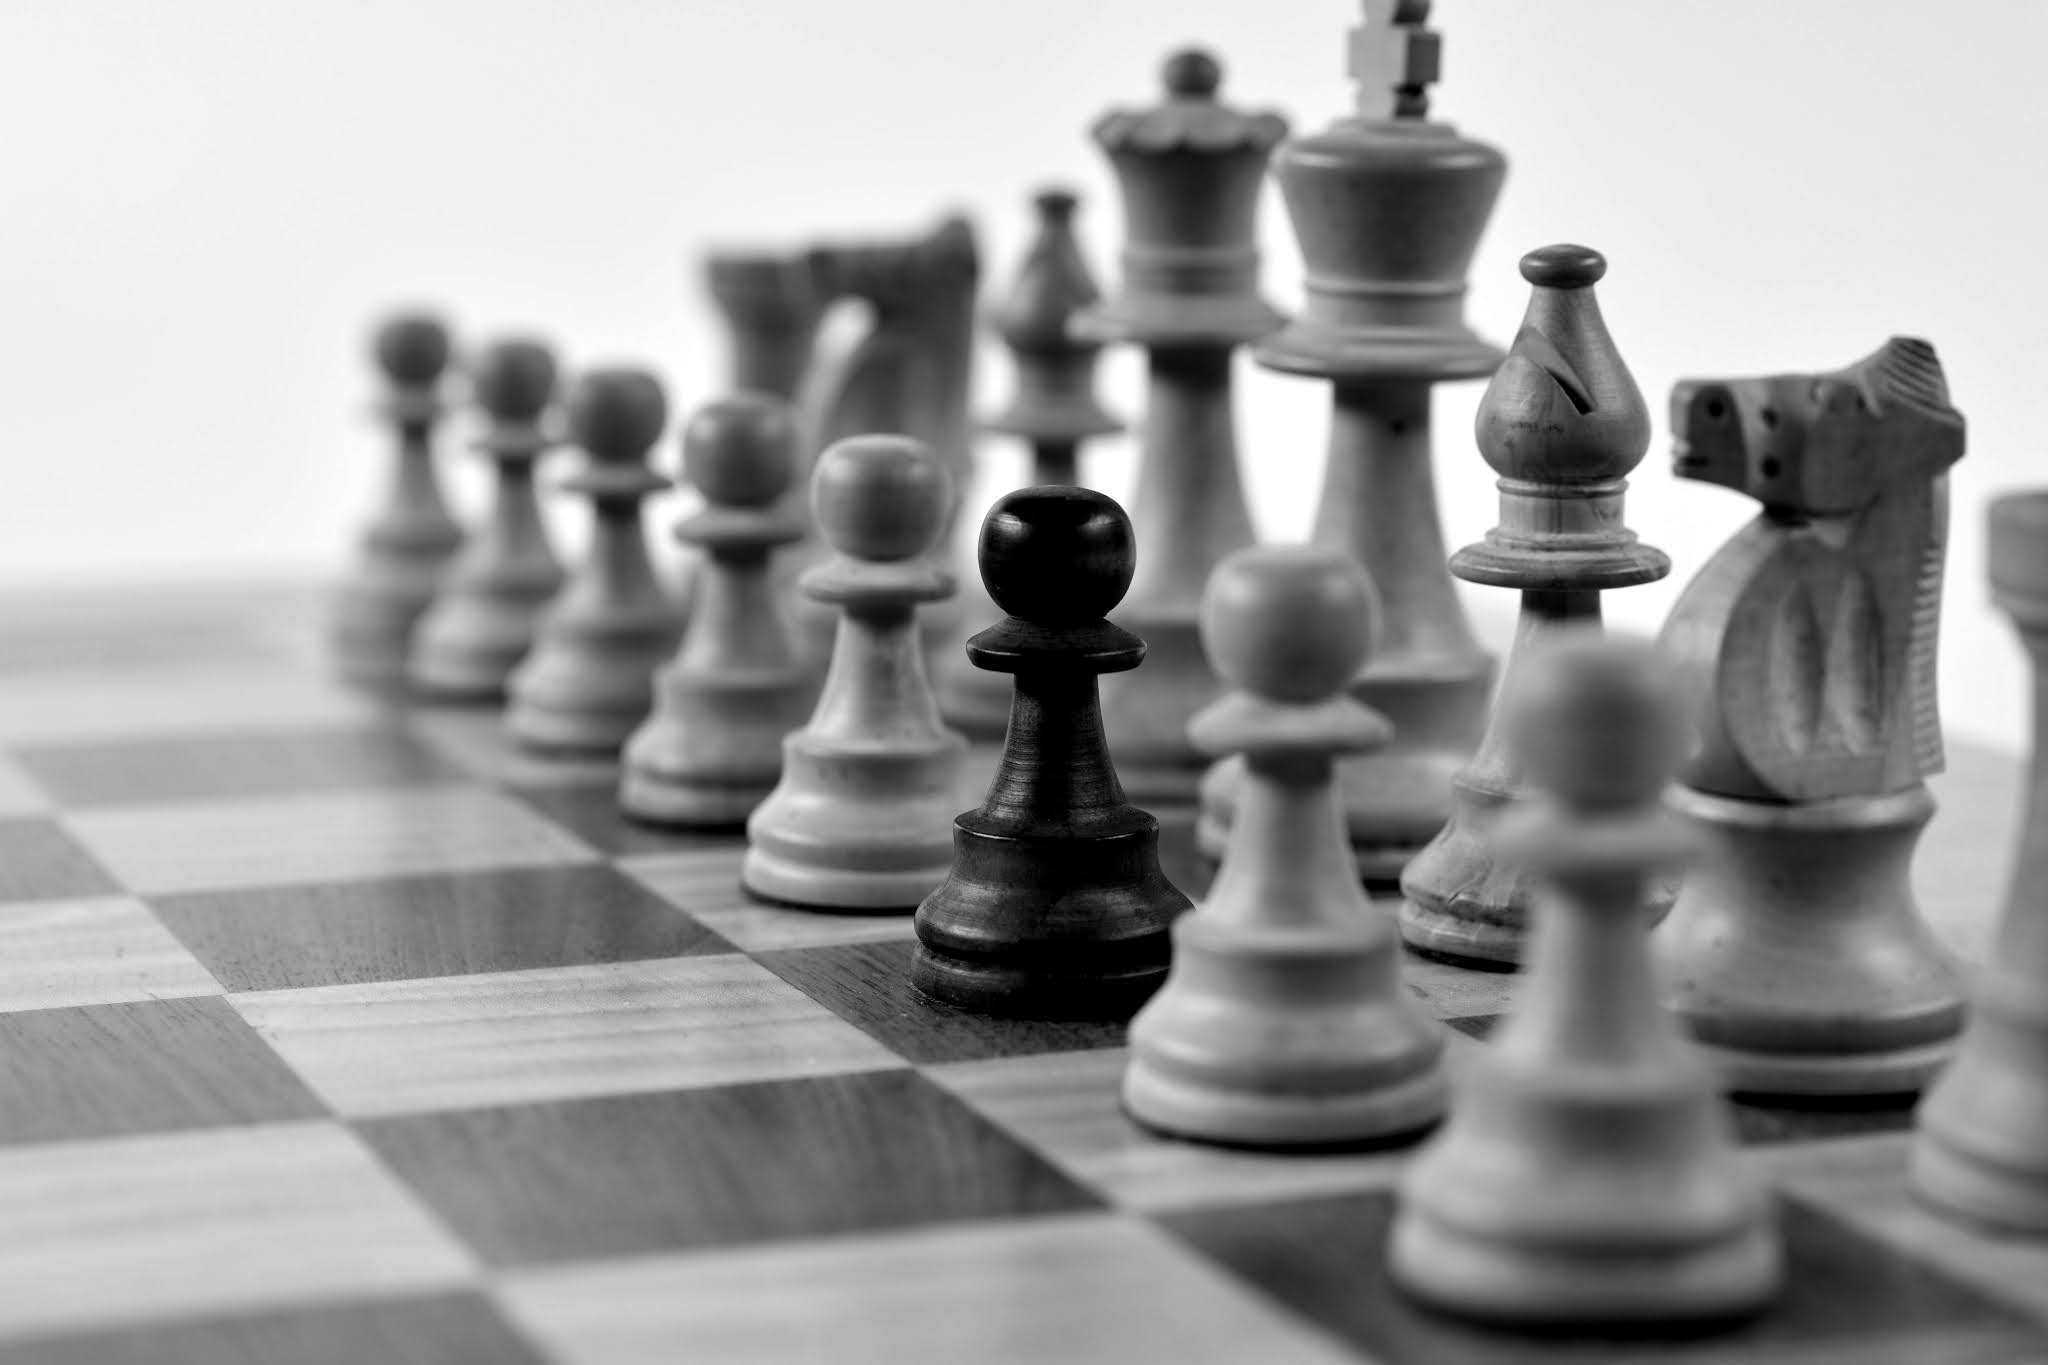 Black pawn among White chess pieces, Odd one out